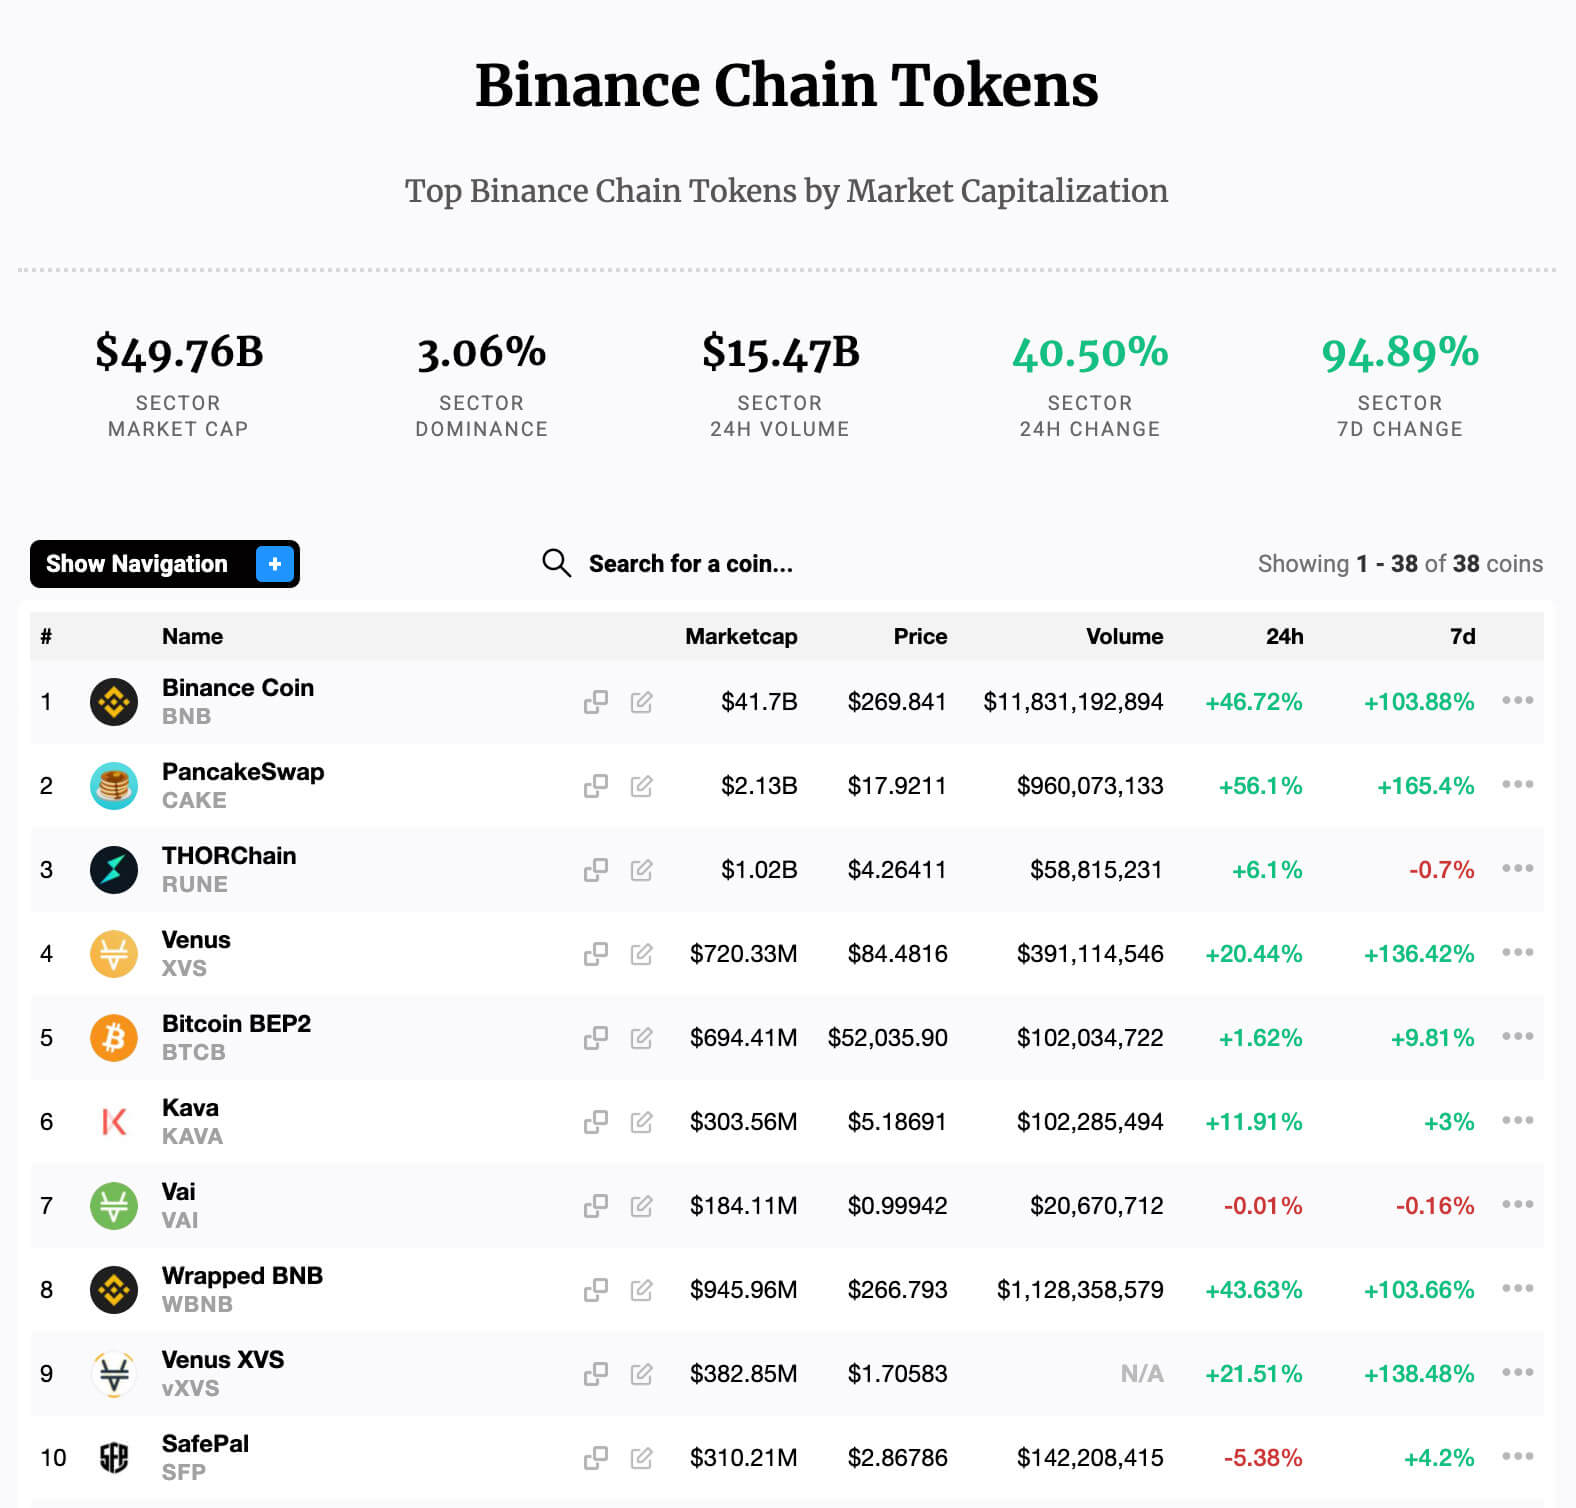 binance chain tokens